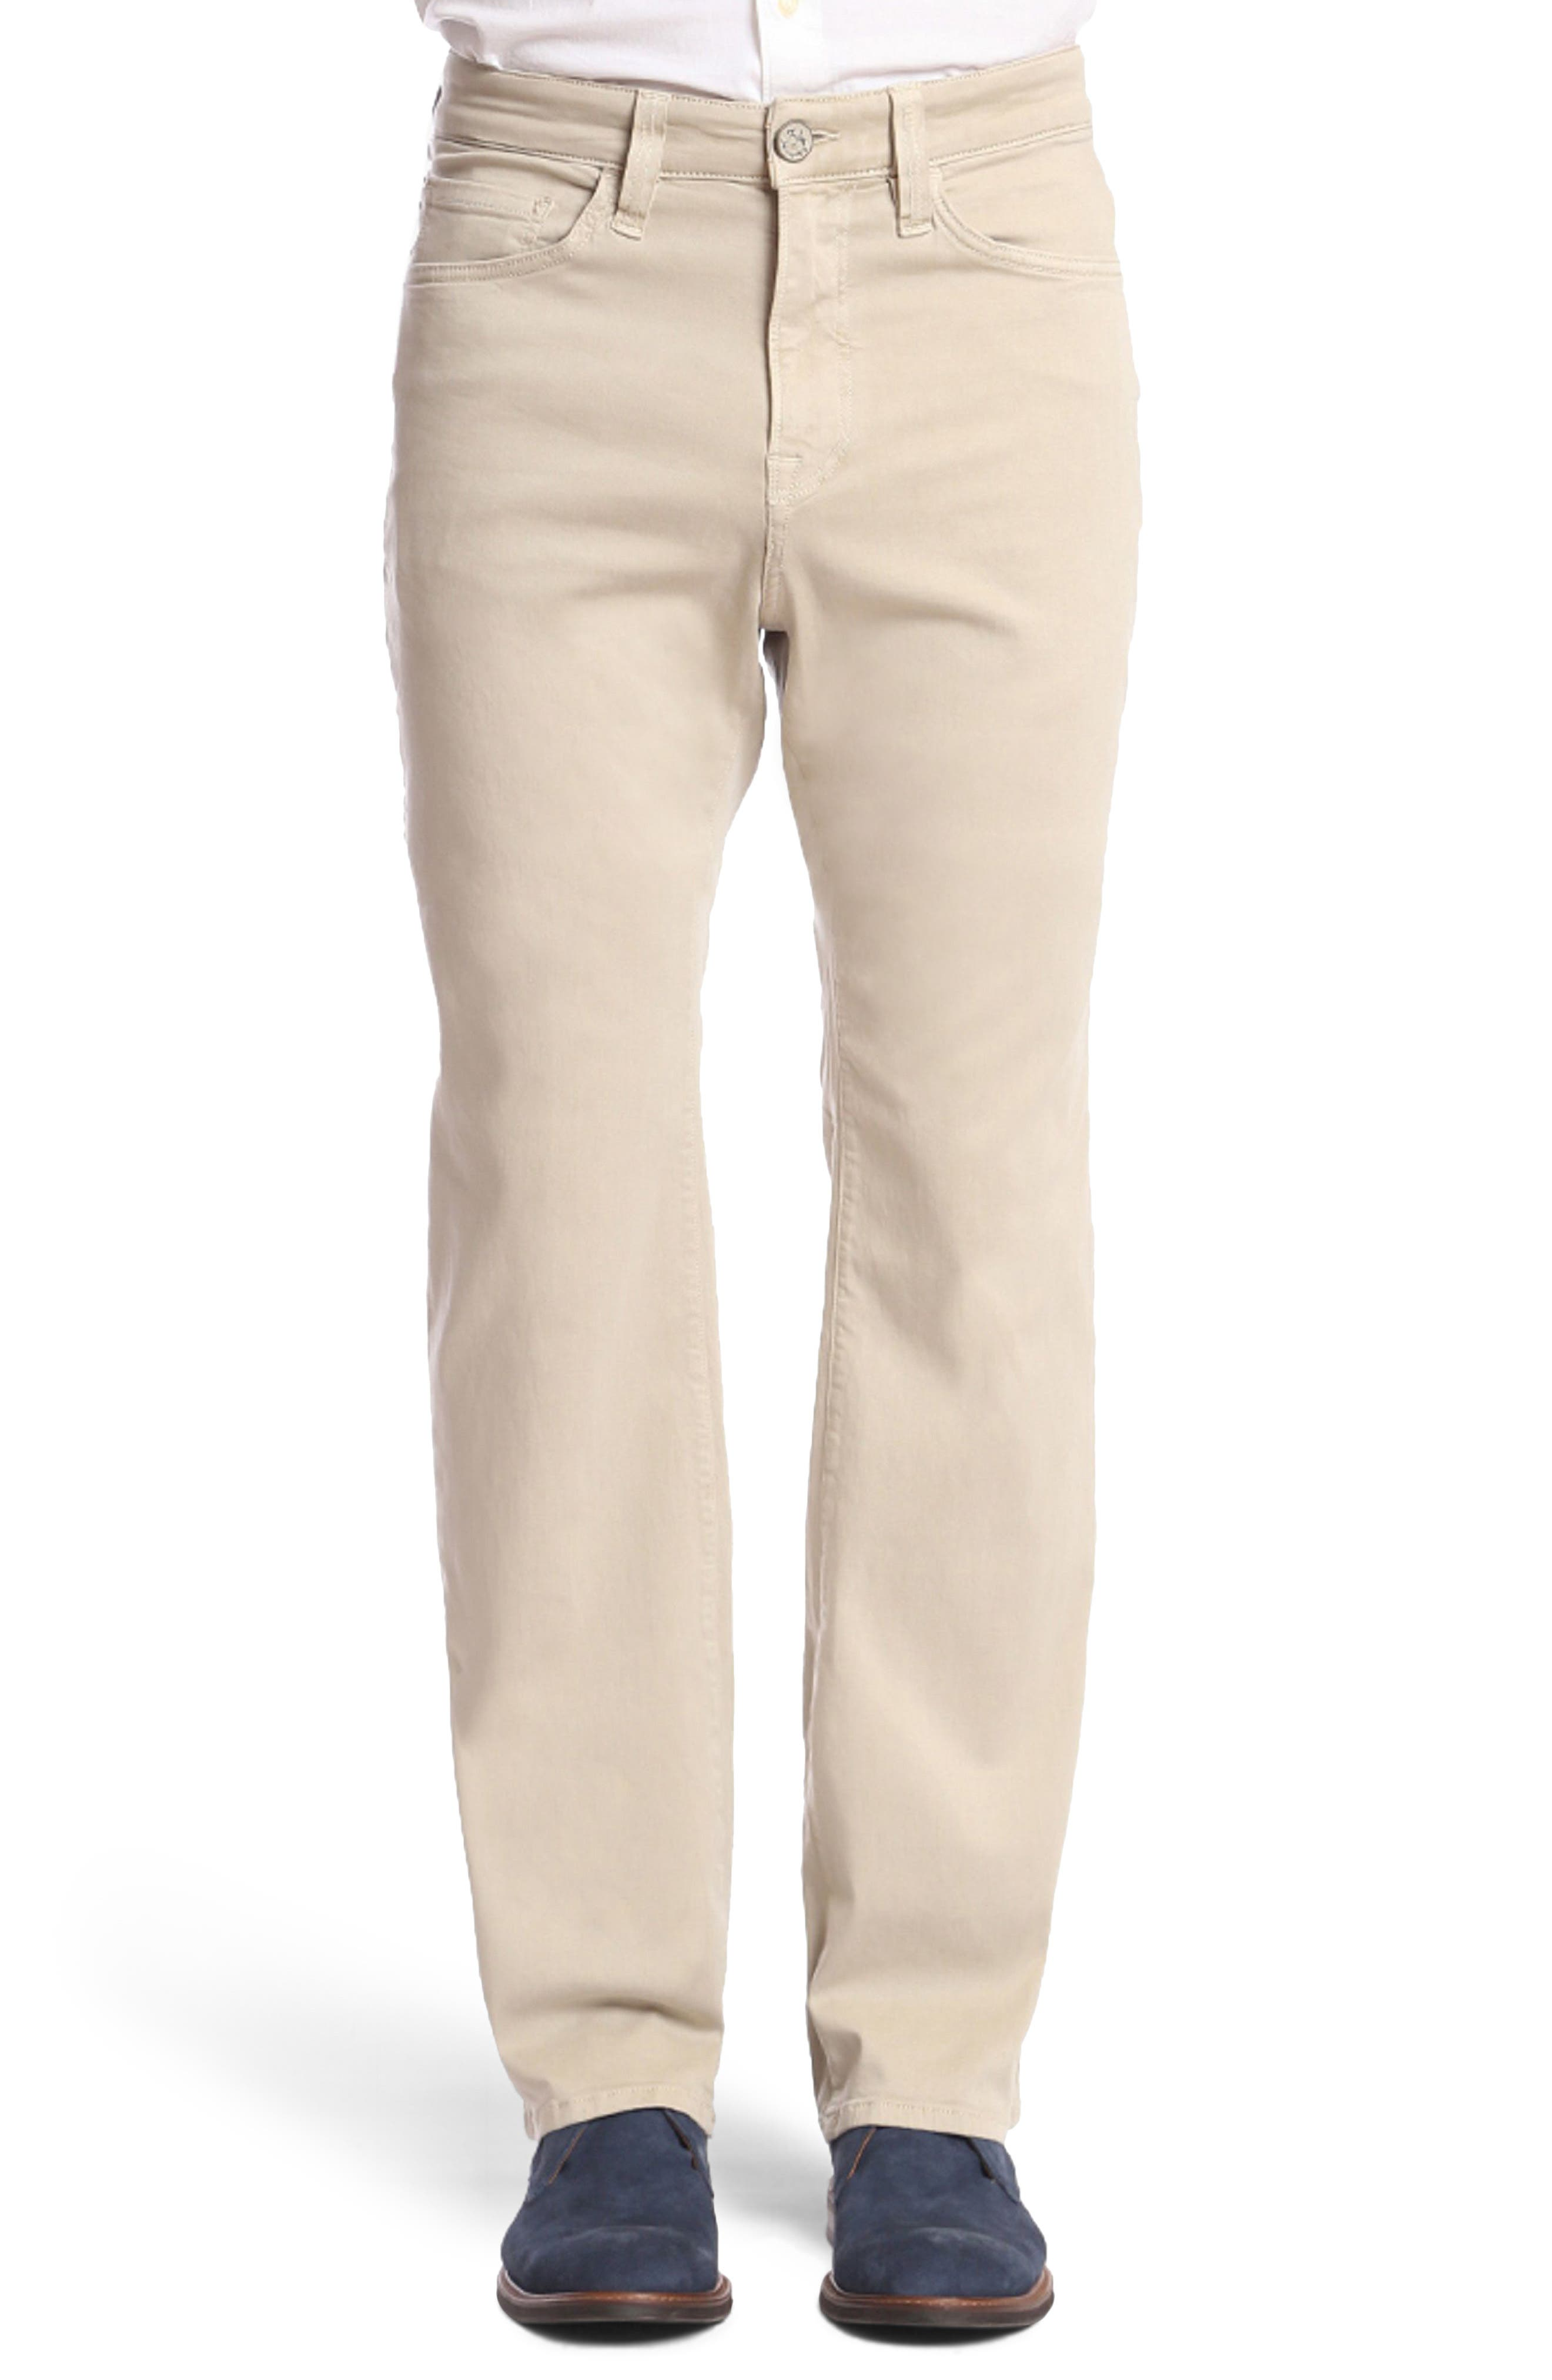 Charisma Relaxed Fit Jeans,                             Main thumbnail 1, color,                             STONE TWILL